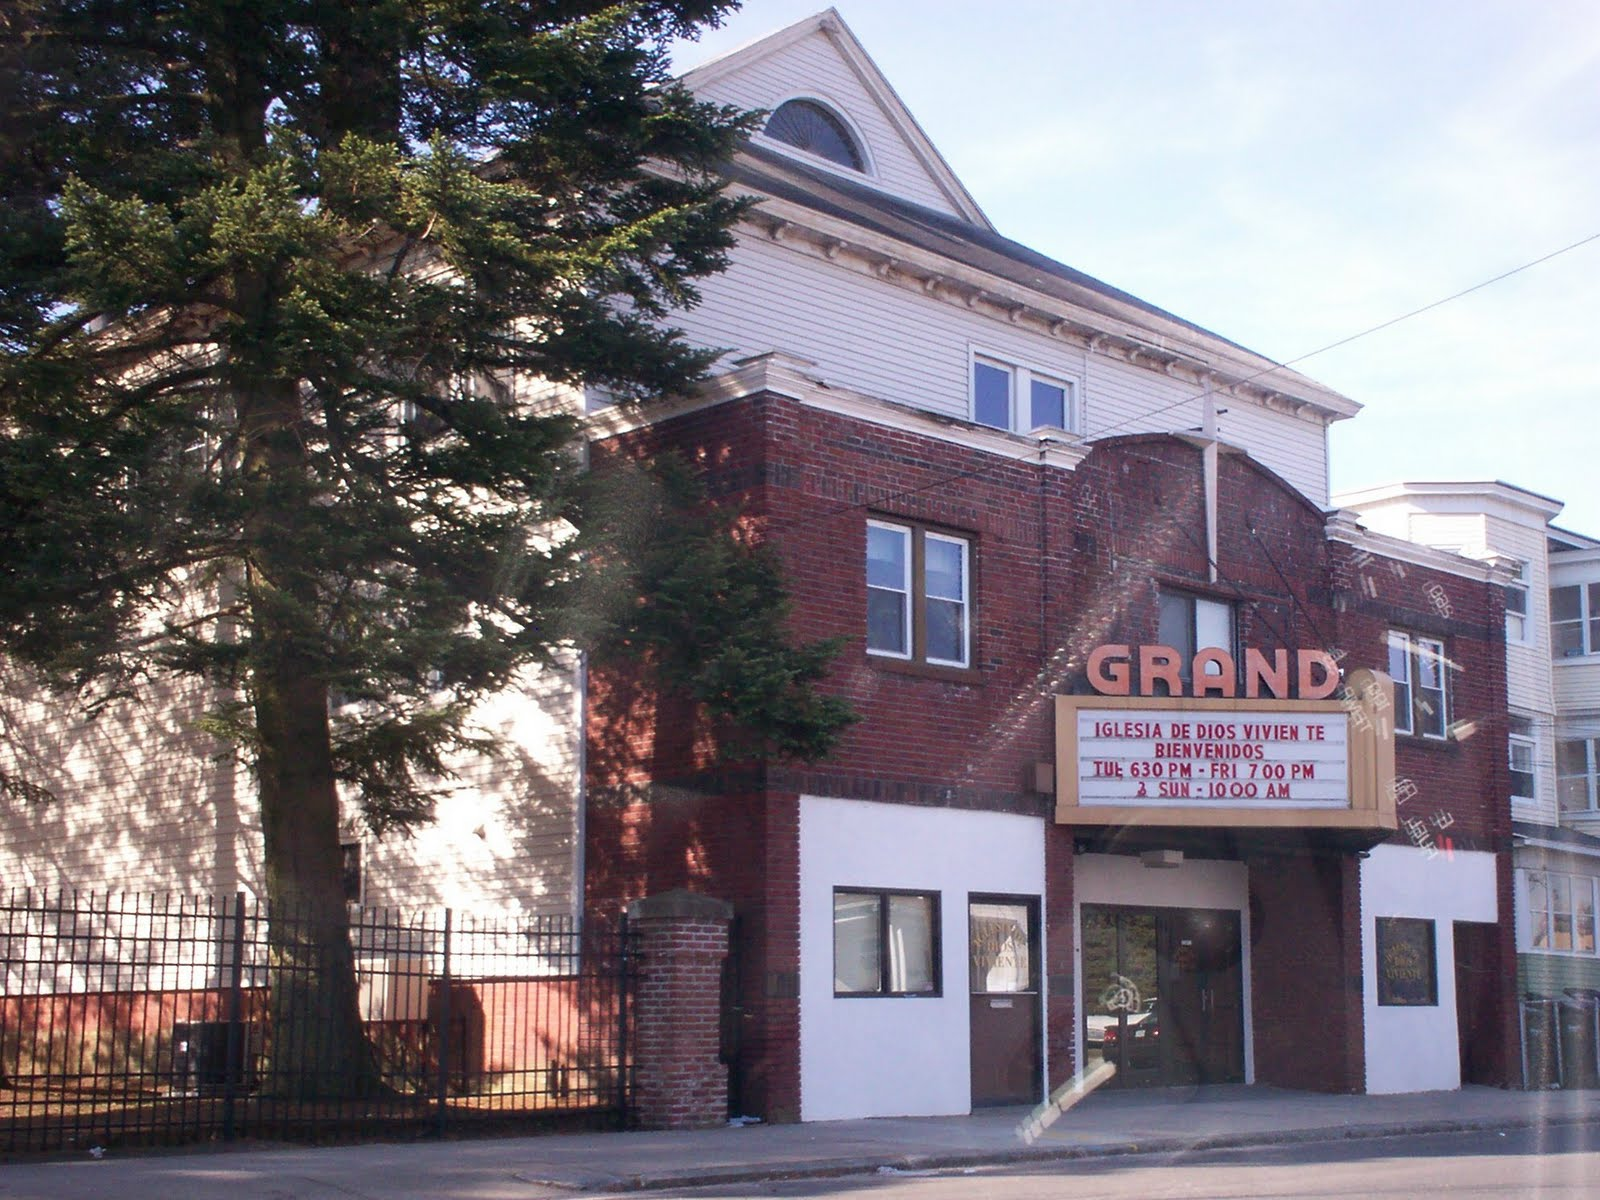 Another old movie blog grand theater indian orchard massachusetts grand theater indian orchard massachusetts altavistaventures Images